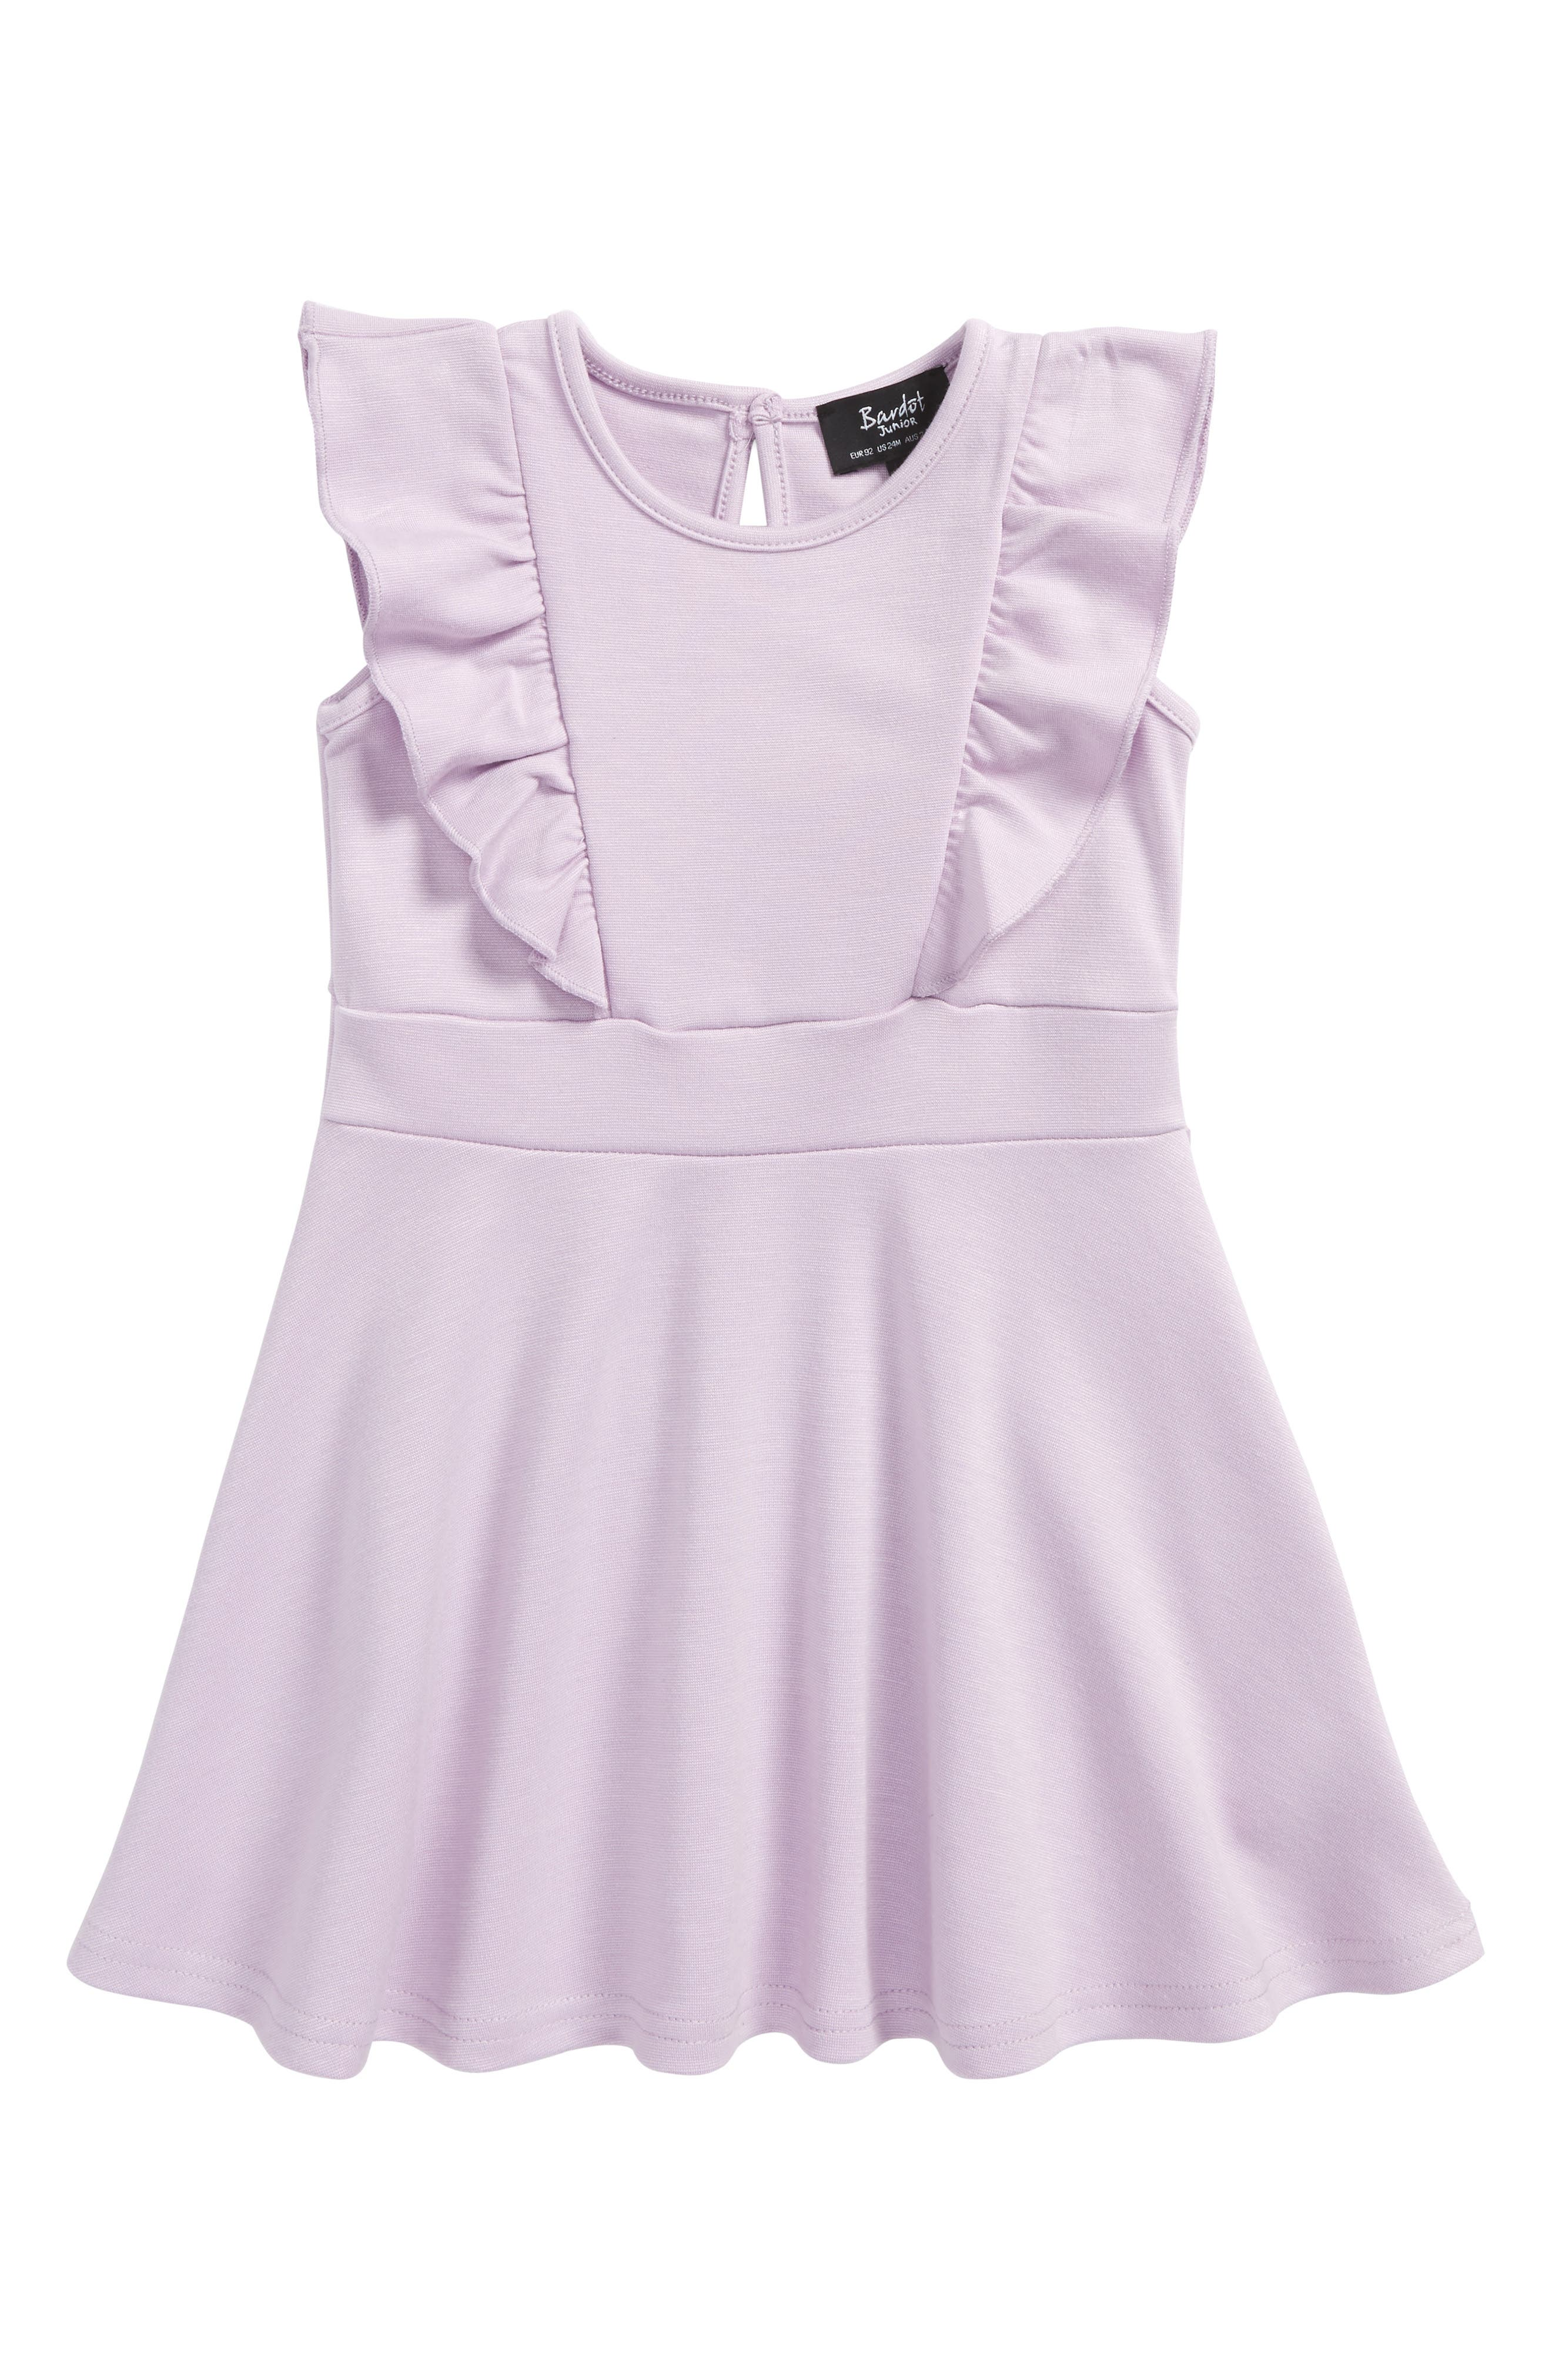 Ruffle Dress,                         Main,                         color, Orchid